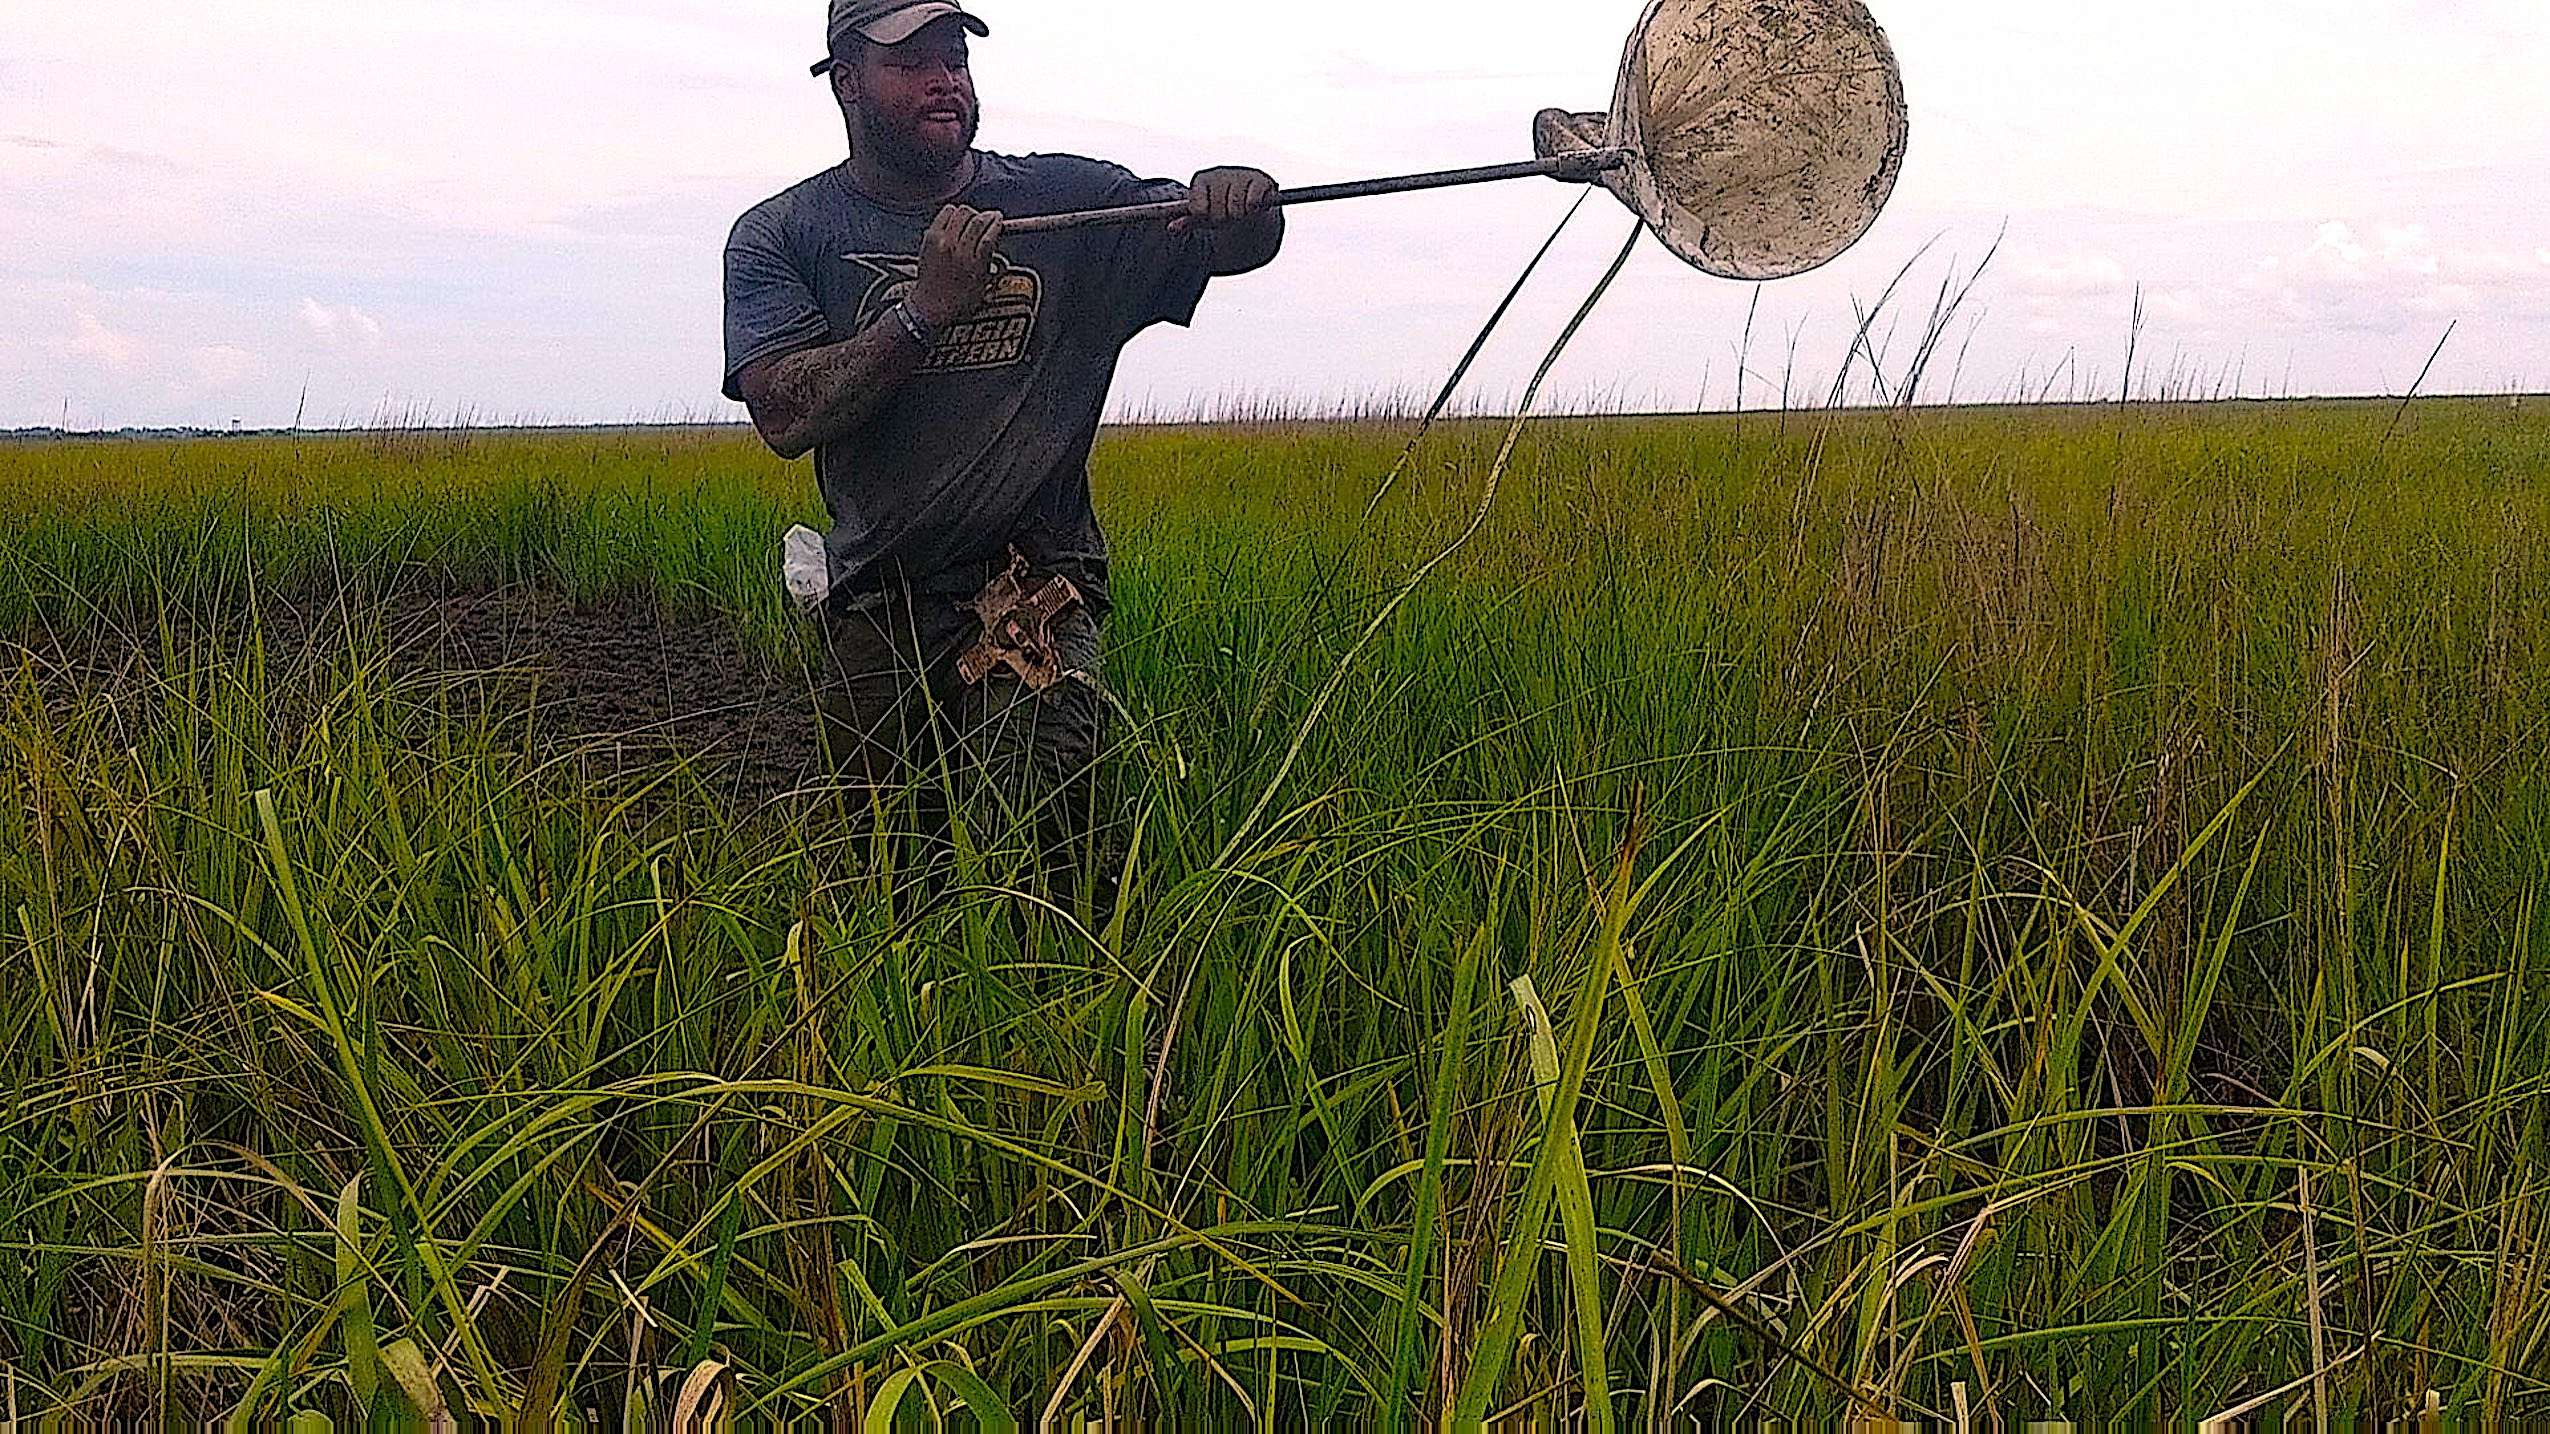 Alex Troutman (above) conducts research on the diets of seaside sparrows, a species endemic to marshes and wetlands. With sea levels continuing to rise and continuous coastal development, these sparrows are losing their habitat. Photo by Adam Rosso.